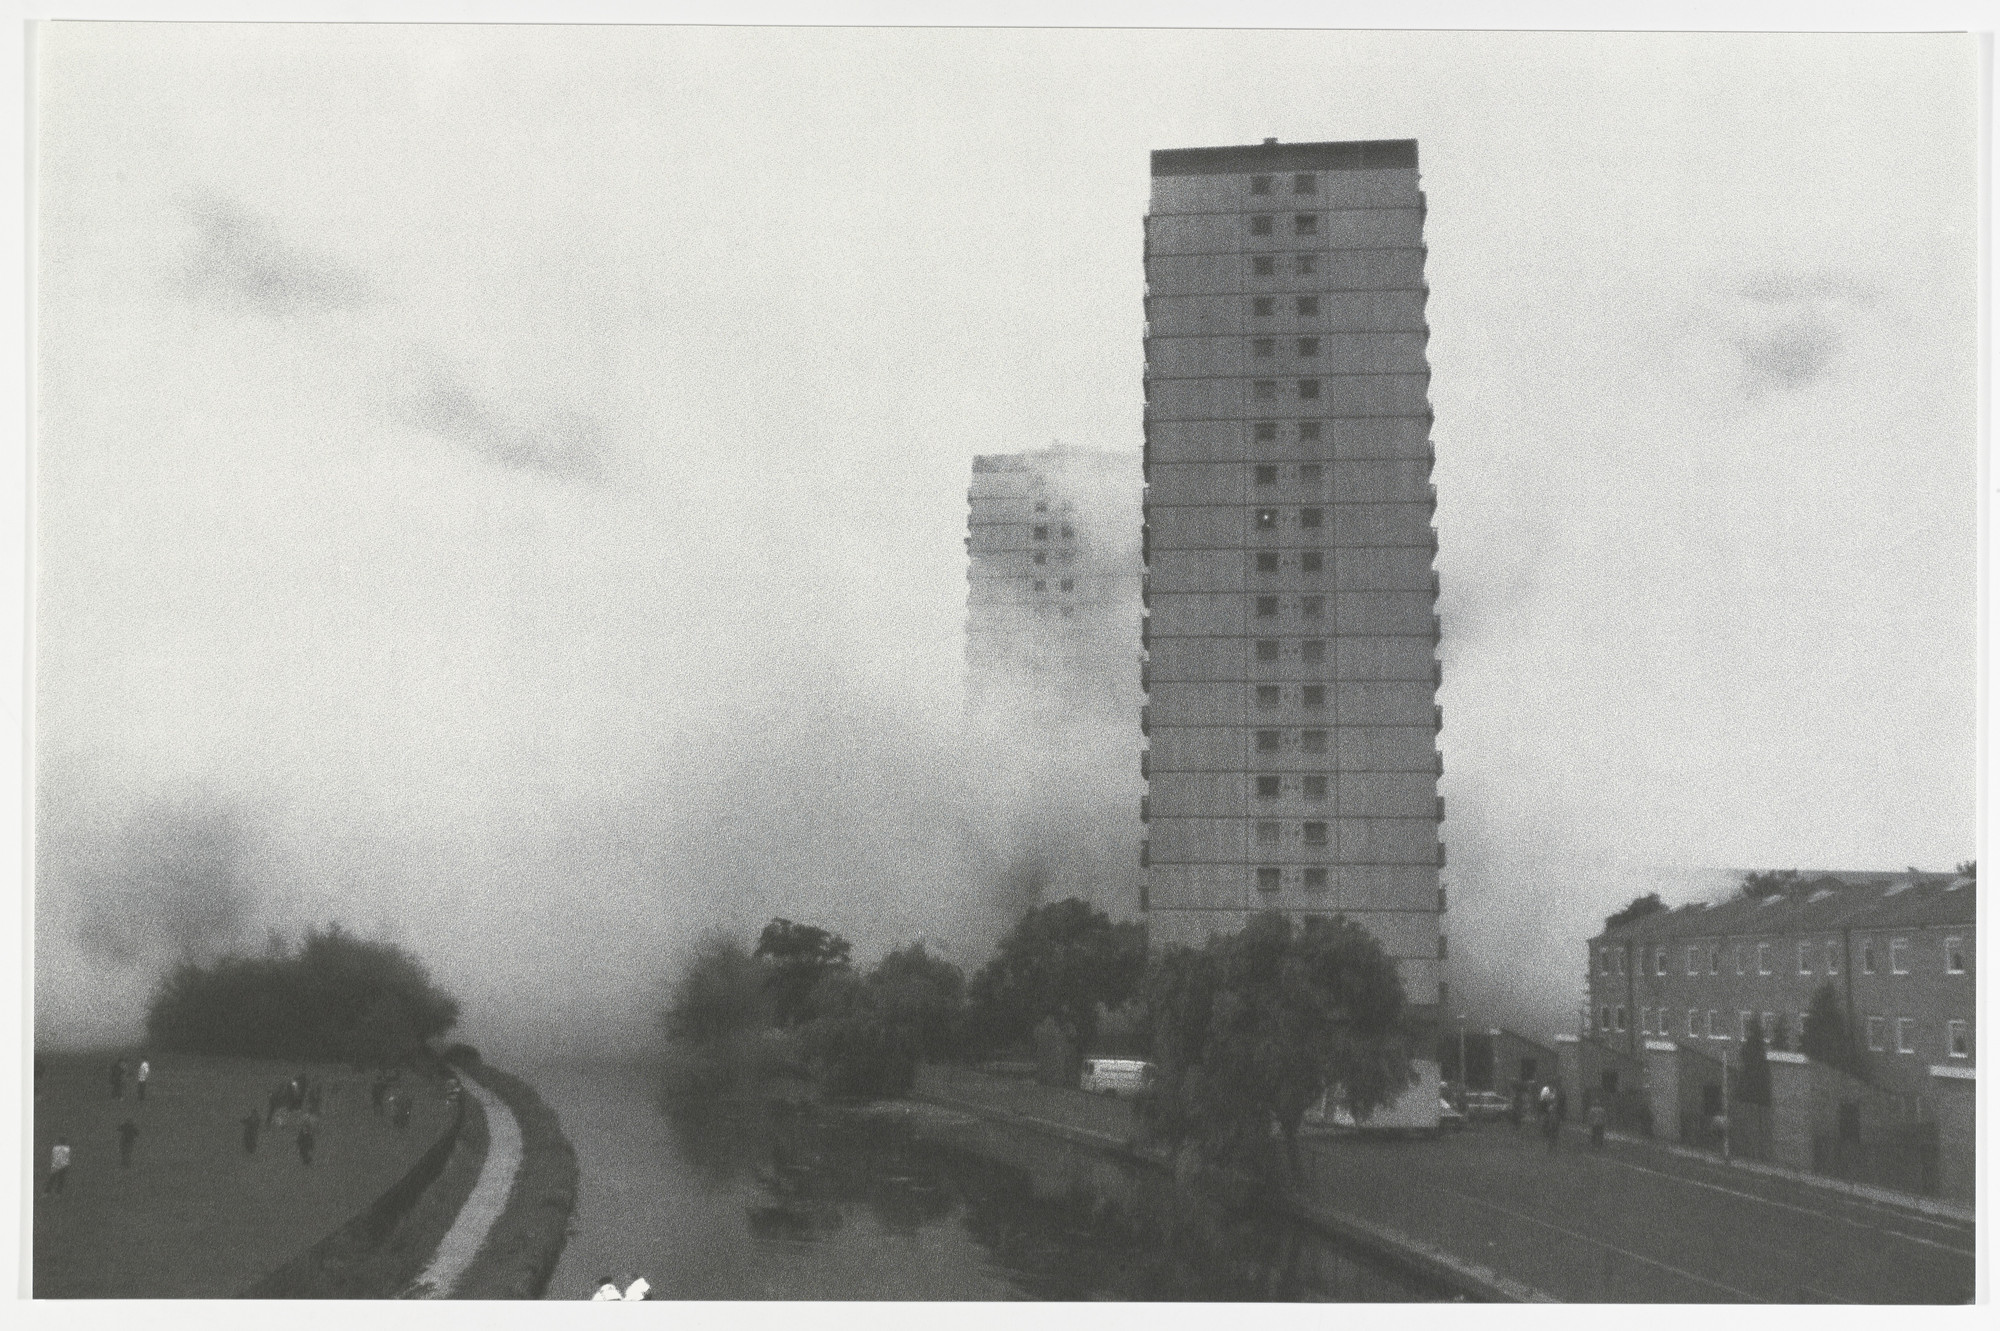 Rachel Whiteread. Untitled from Demolished. 1996